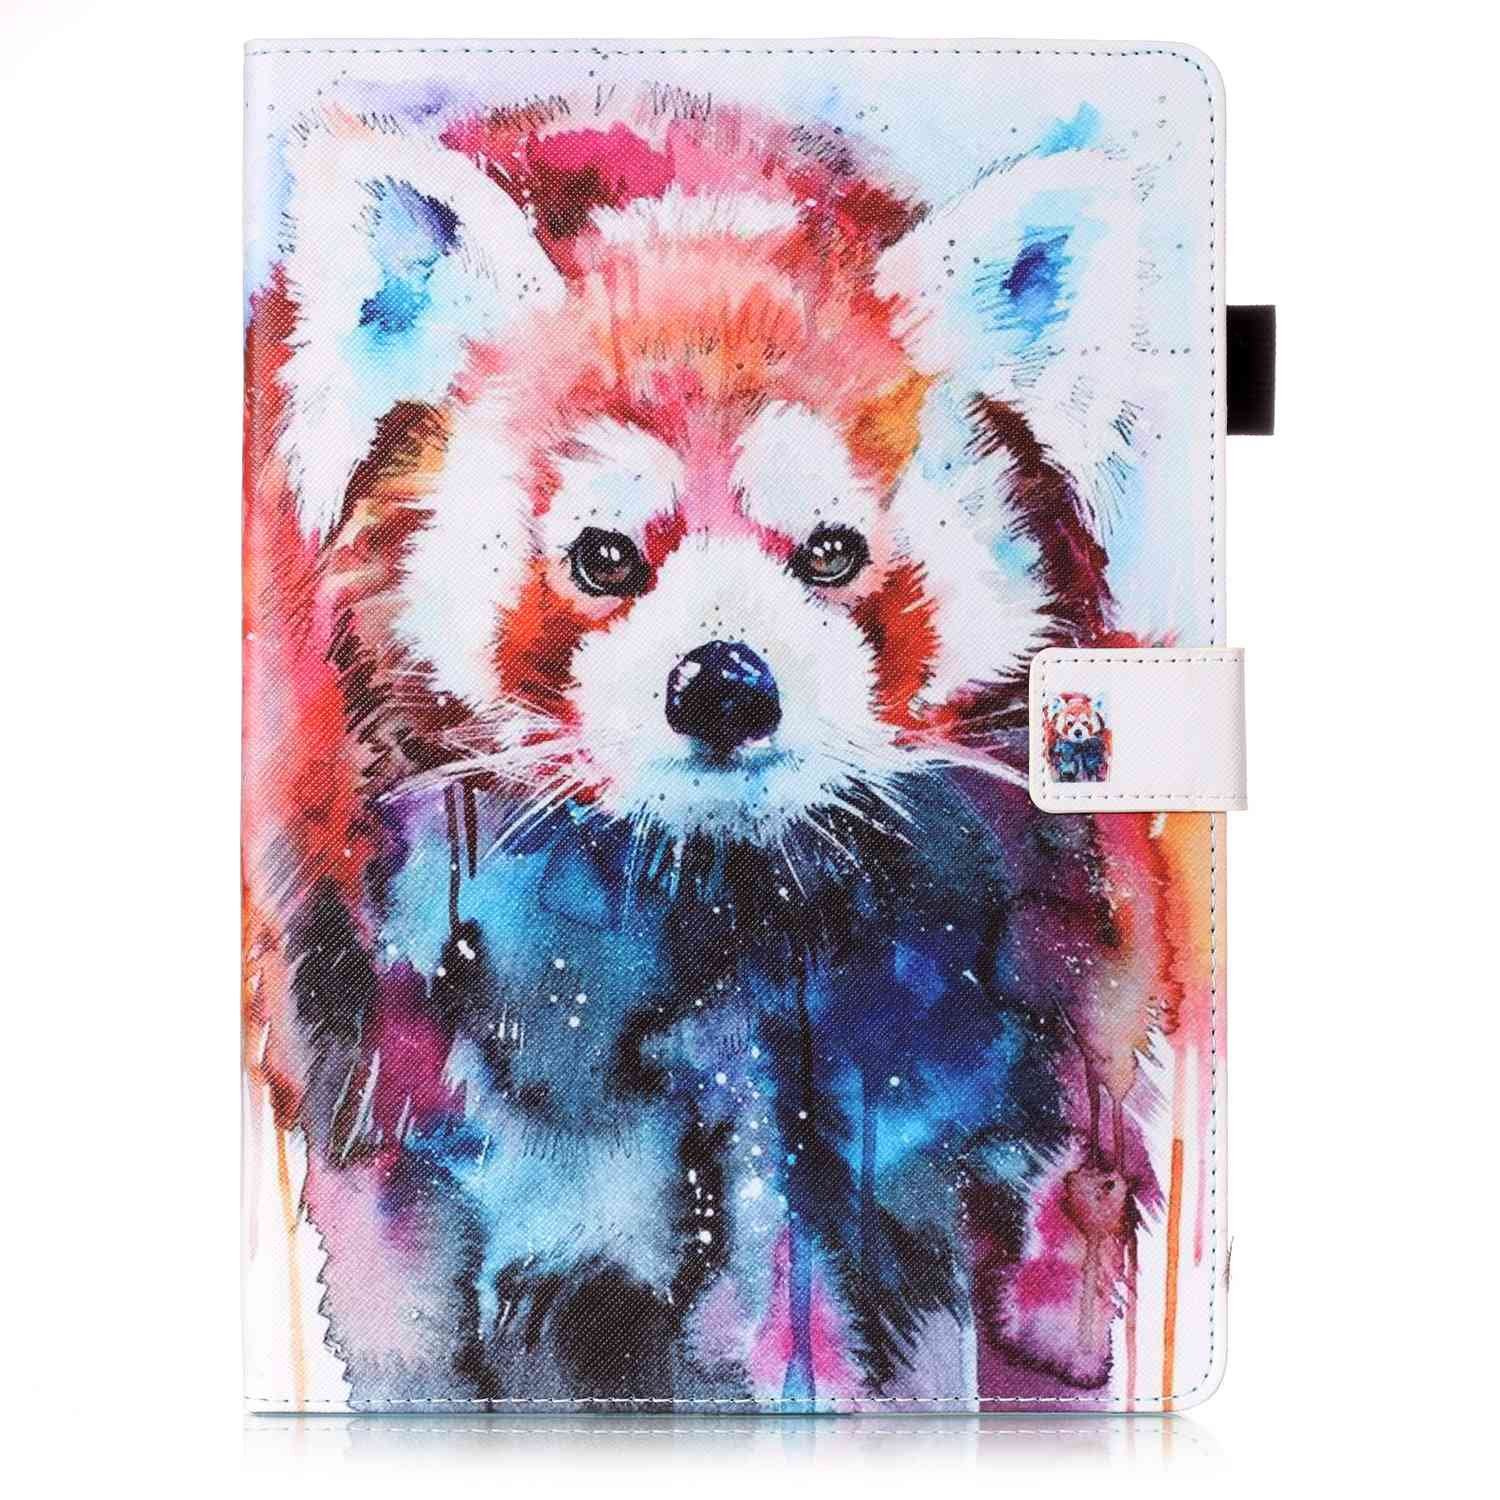 New iPad Case Smart Leather Case - UNOTECH Card Slot Protective Case with Pen Holder Wake/Sleep Function for New iPad 9.7 Inch 2017,iPad Air 1 2, Leopard Cat by UNOTECH (Image #2)